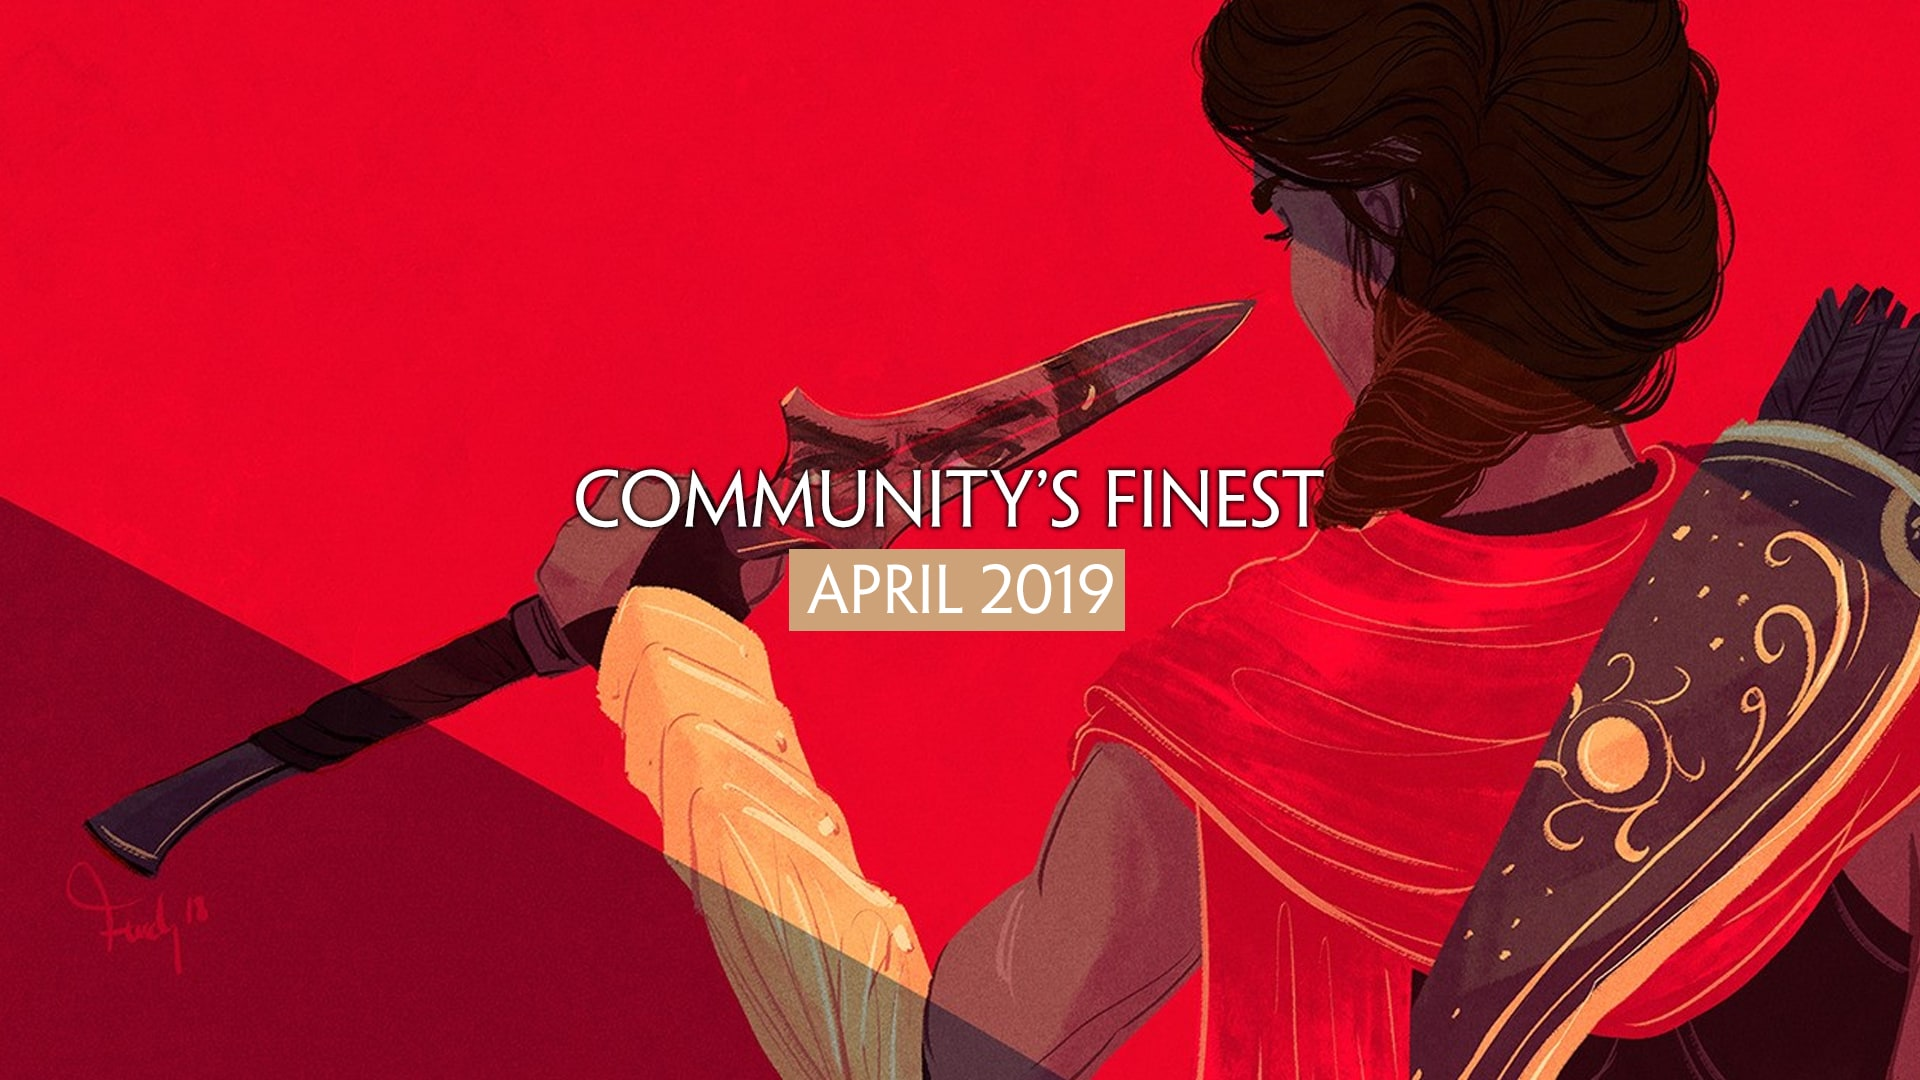 Community S Finest By Assassin S Creed April 2019